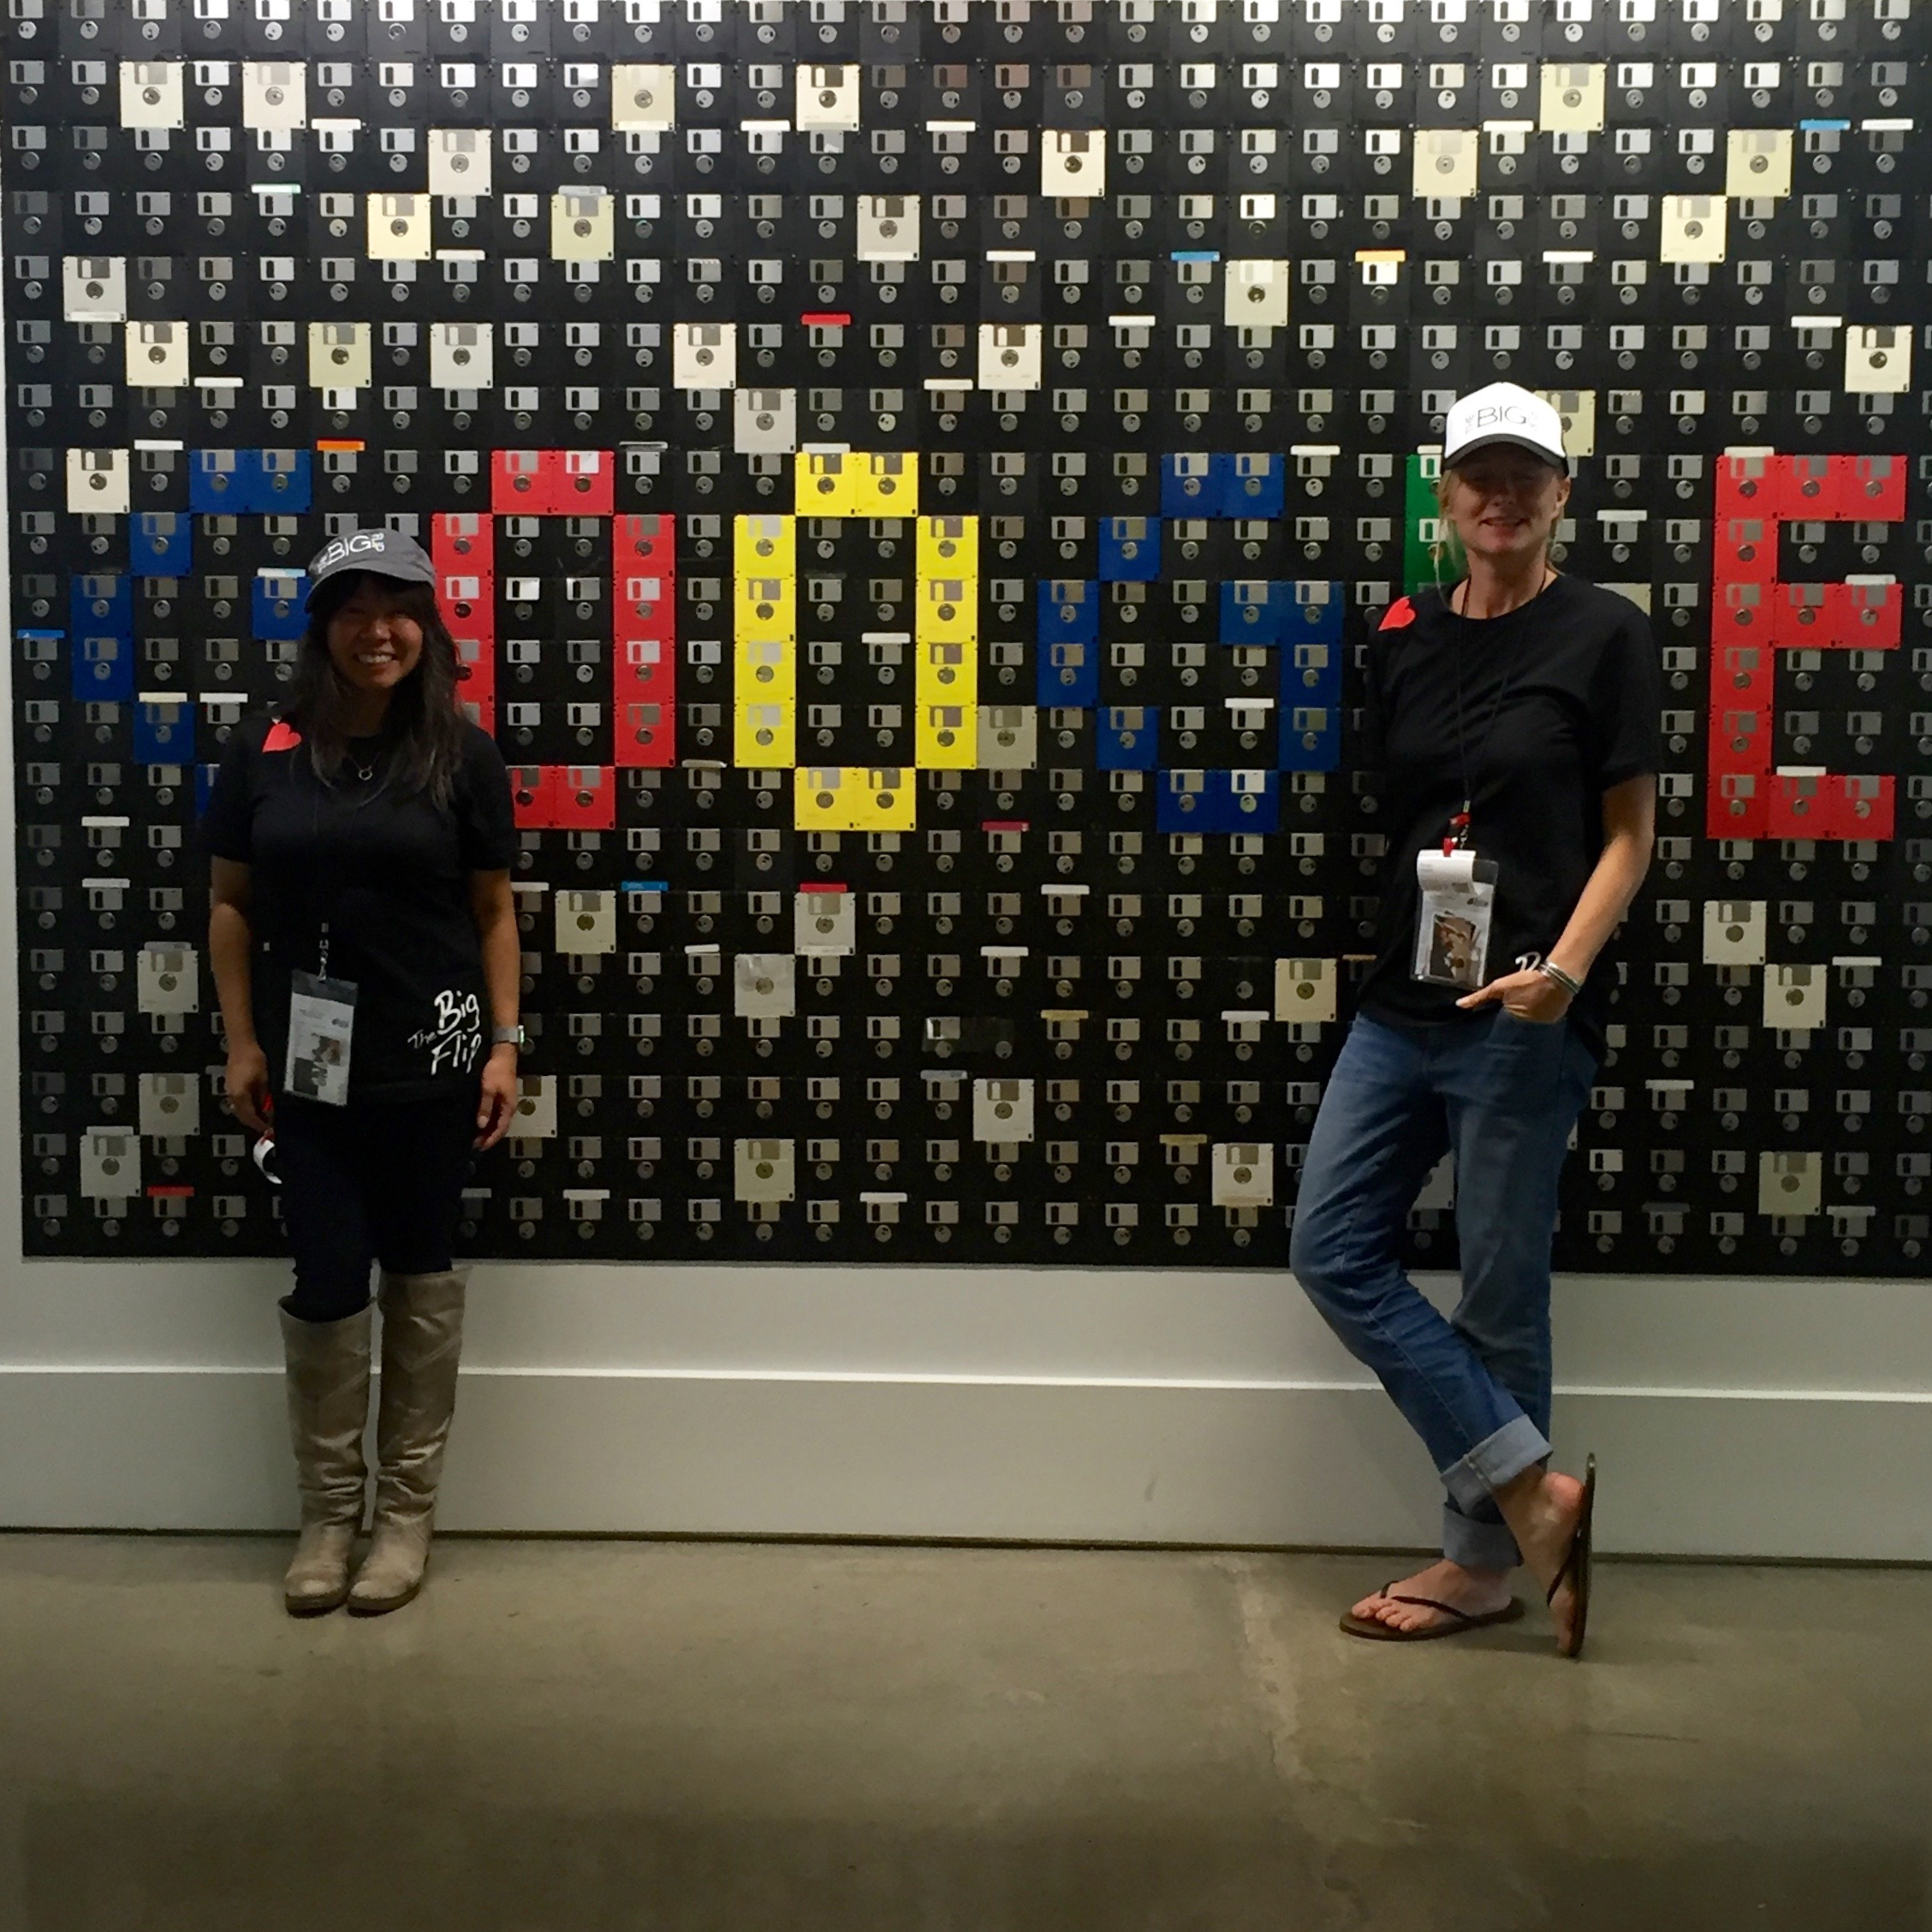 In front of Google's floppy disk art